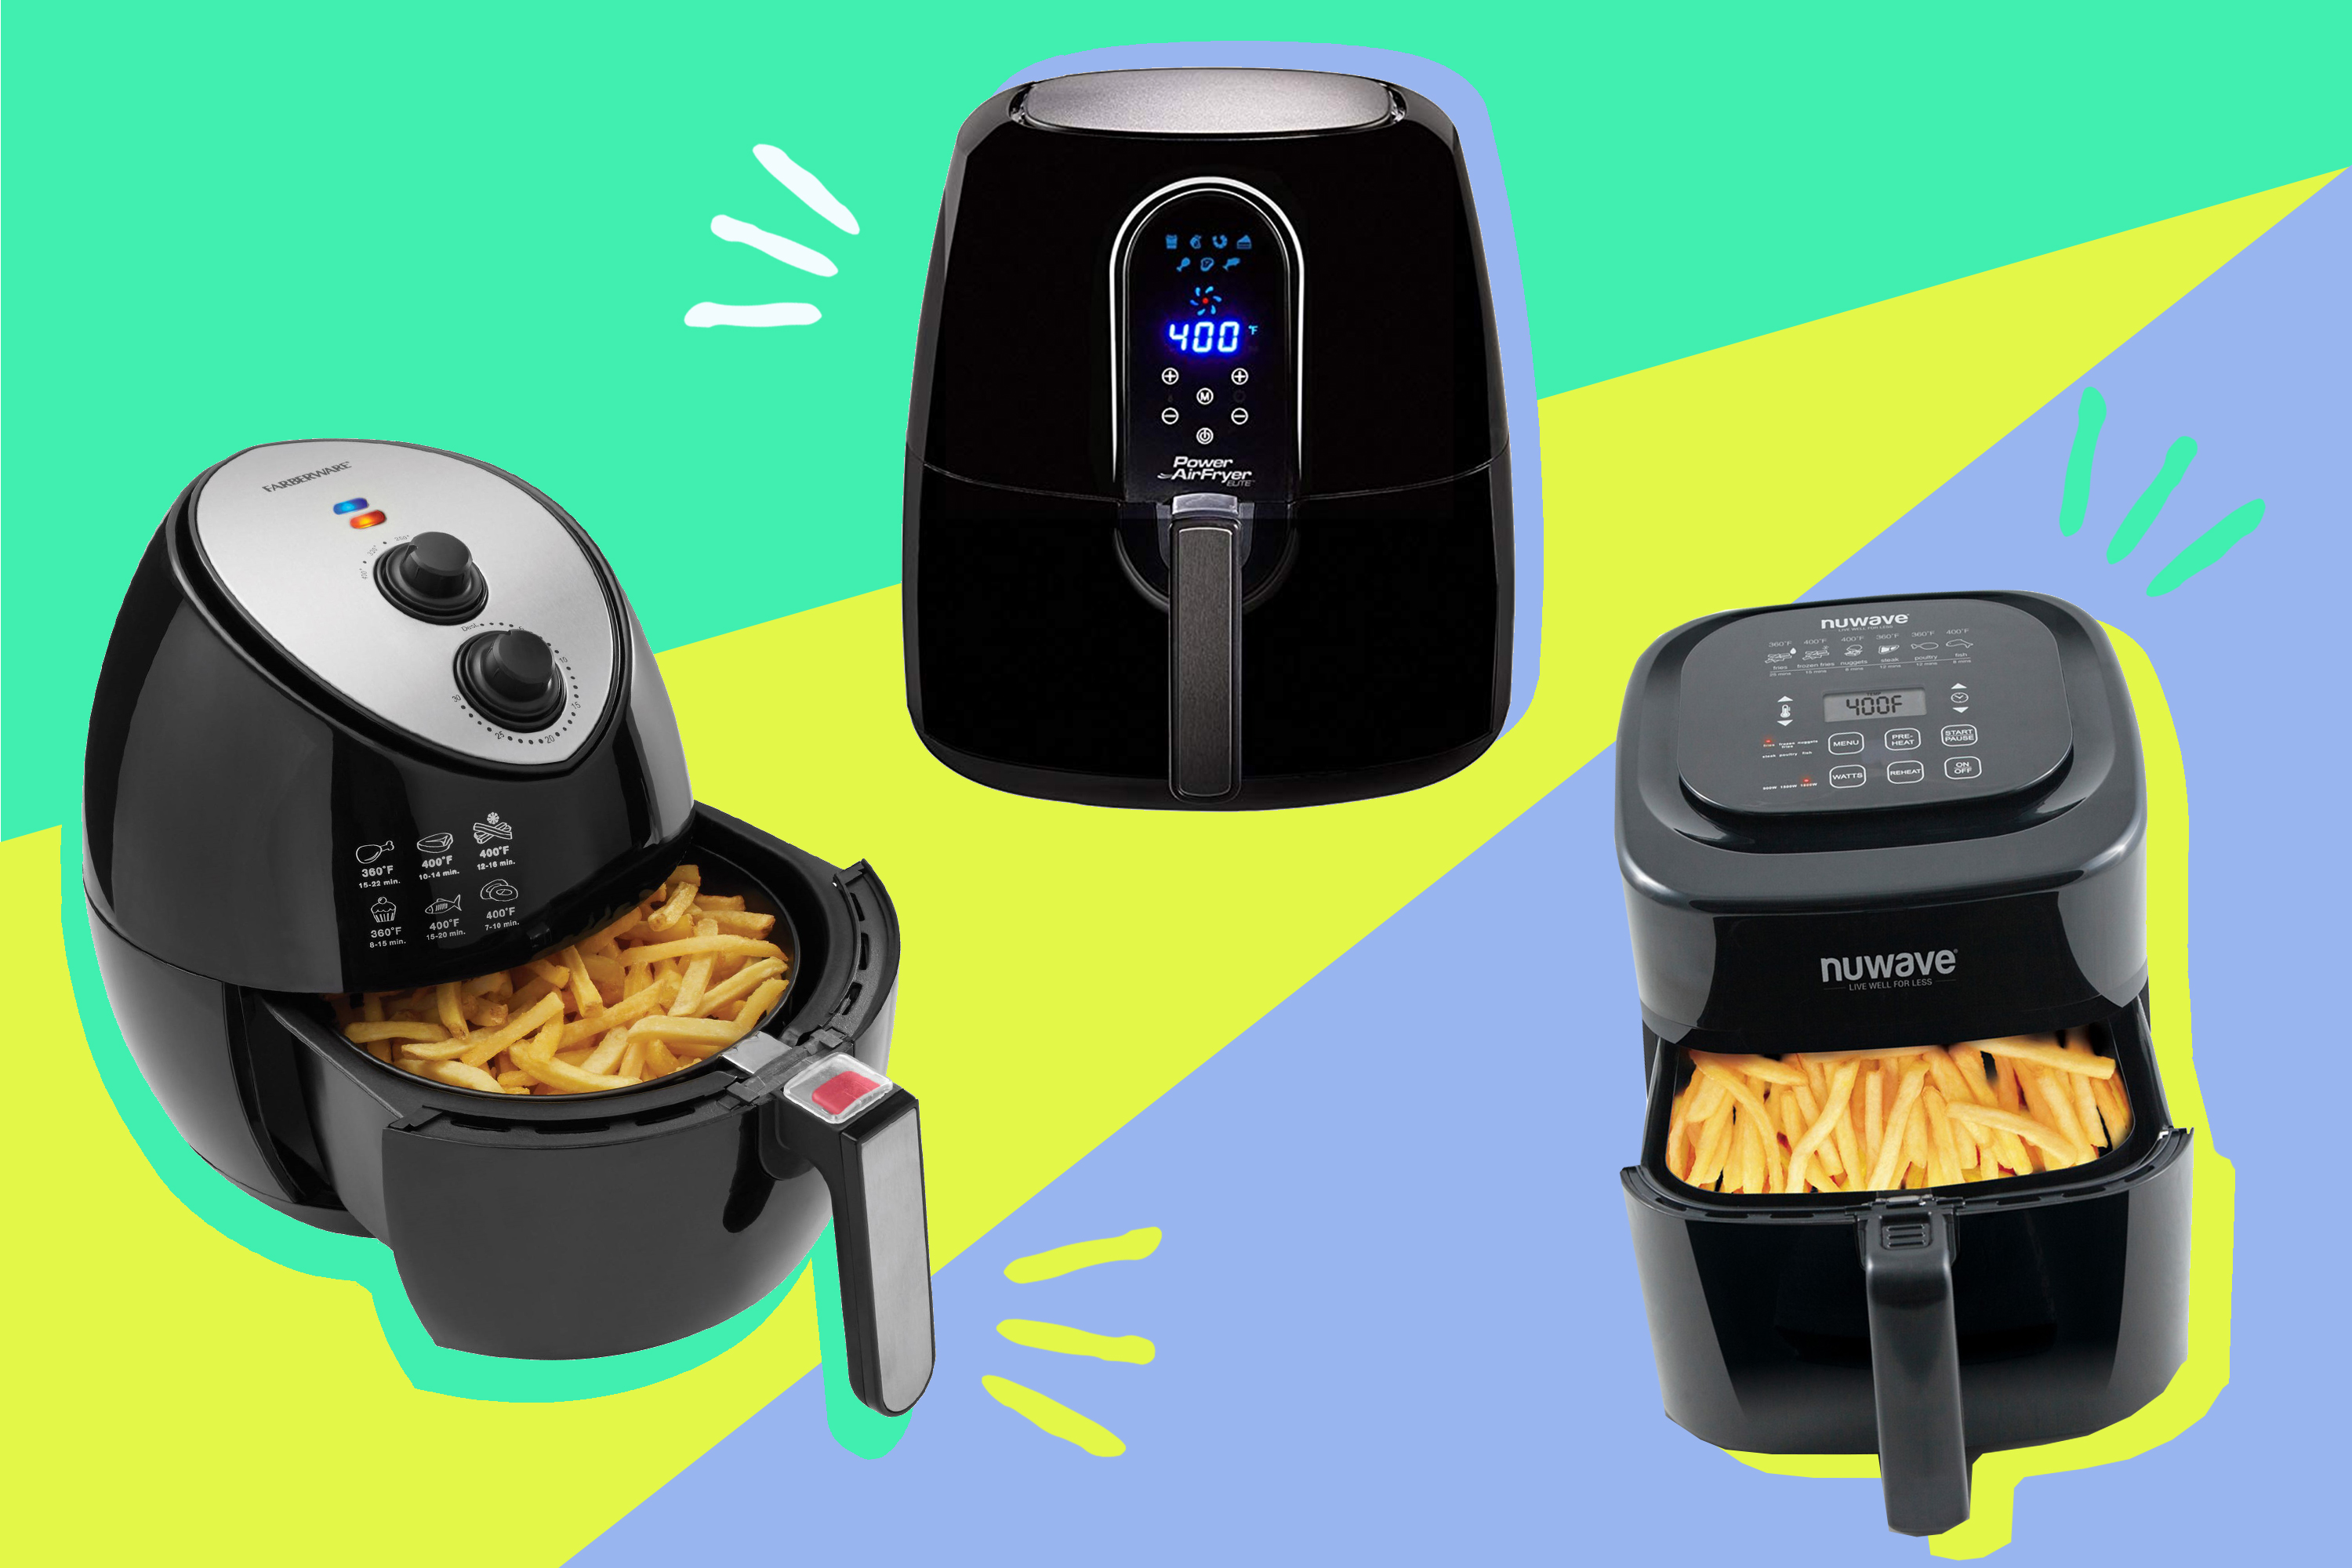 QnA VBage We Compared the NuWave, Power Air, and Farberware Air Fryers: Here's Our Candid Review — Shopping